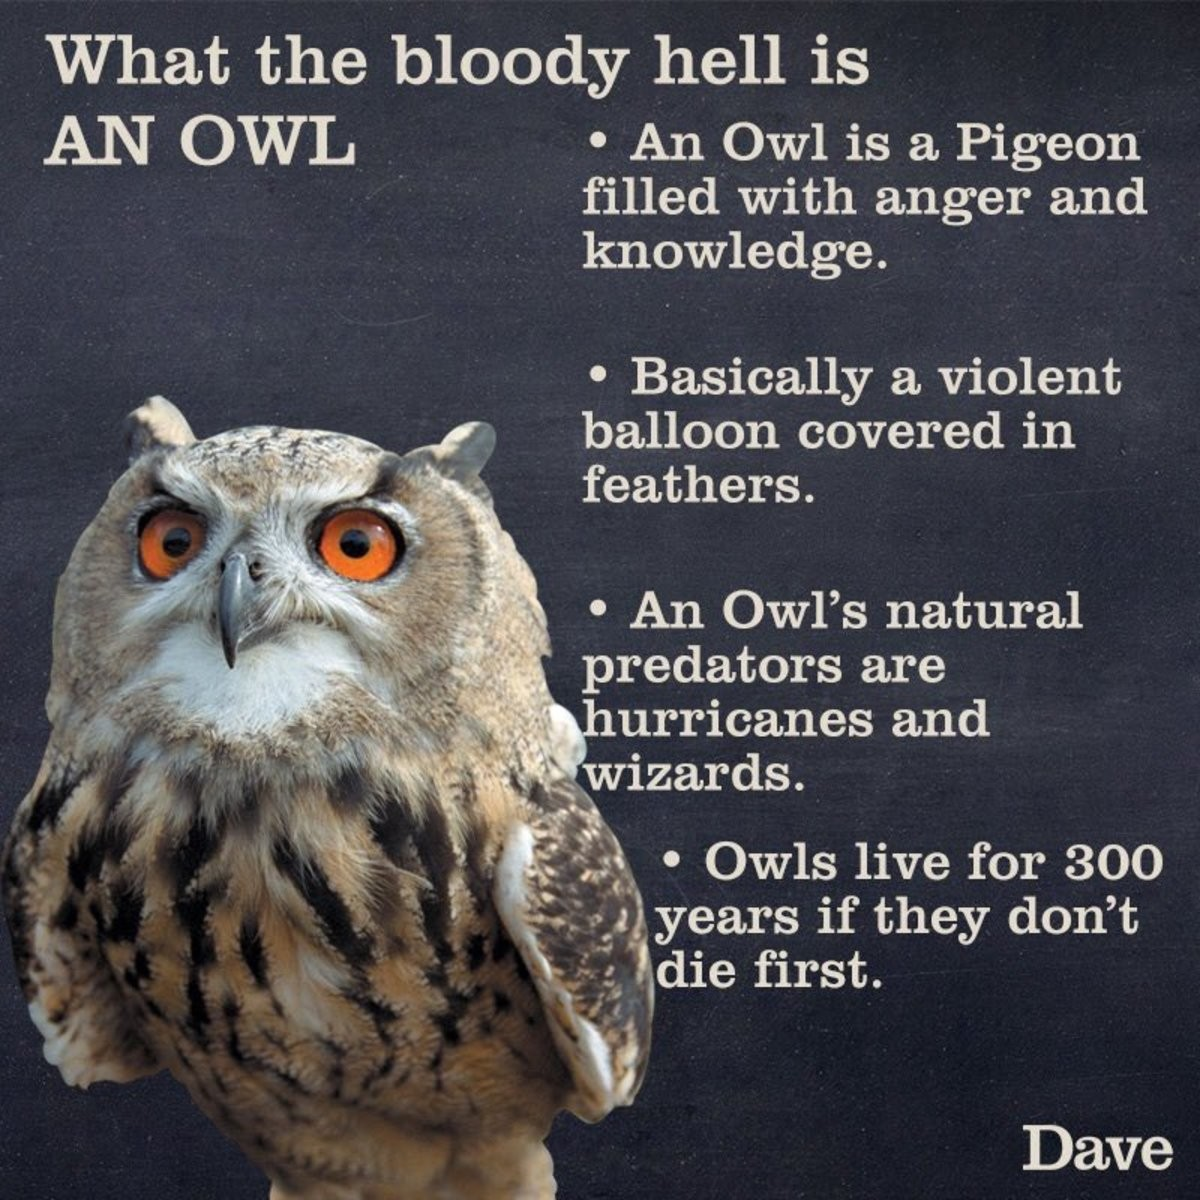 Owls. .. Owls are much much more beautiful than pigeons. My cats would be pissed I said that, everytime they see even a medium sized they are like